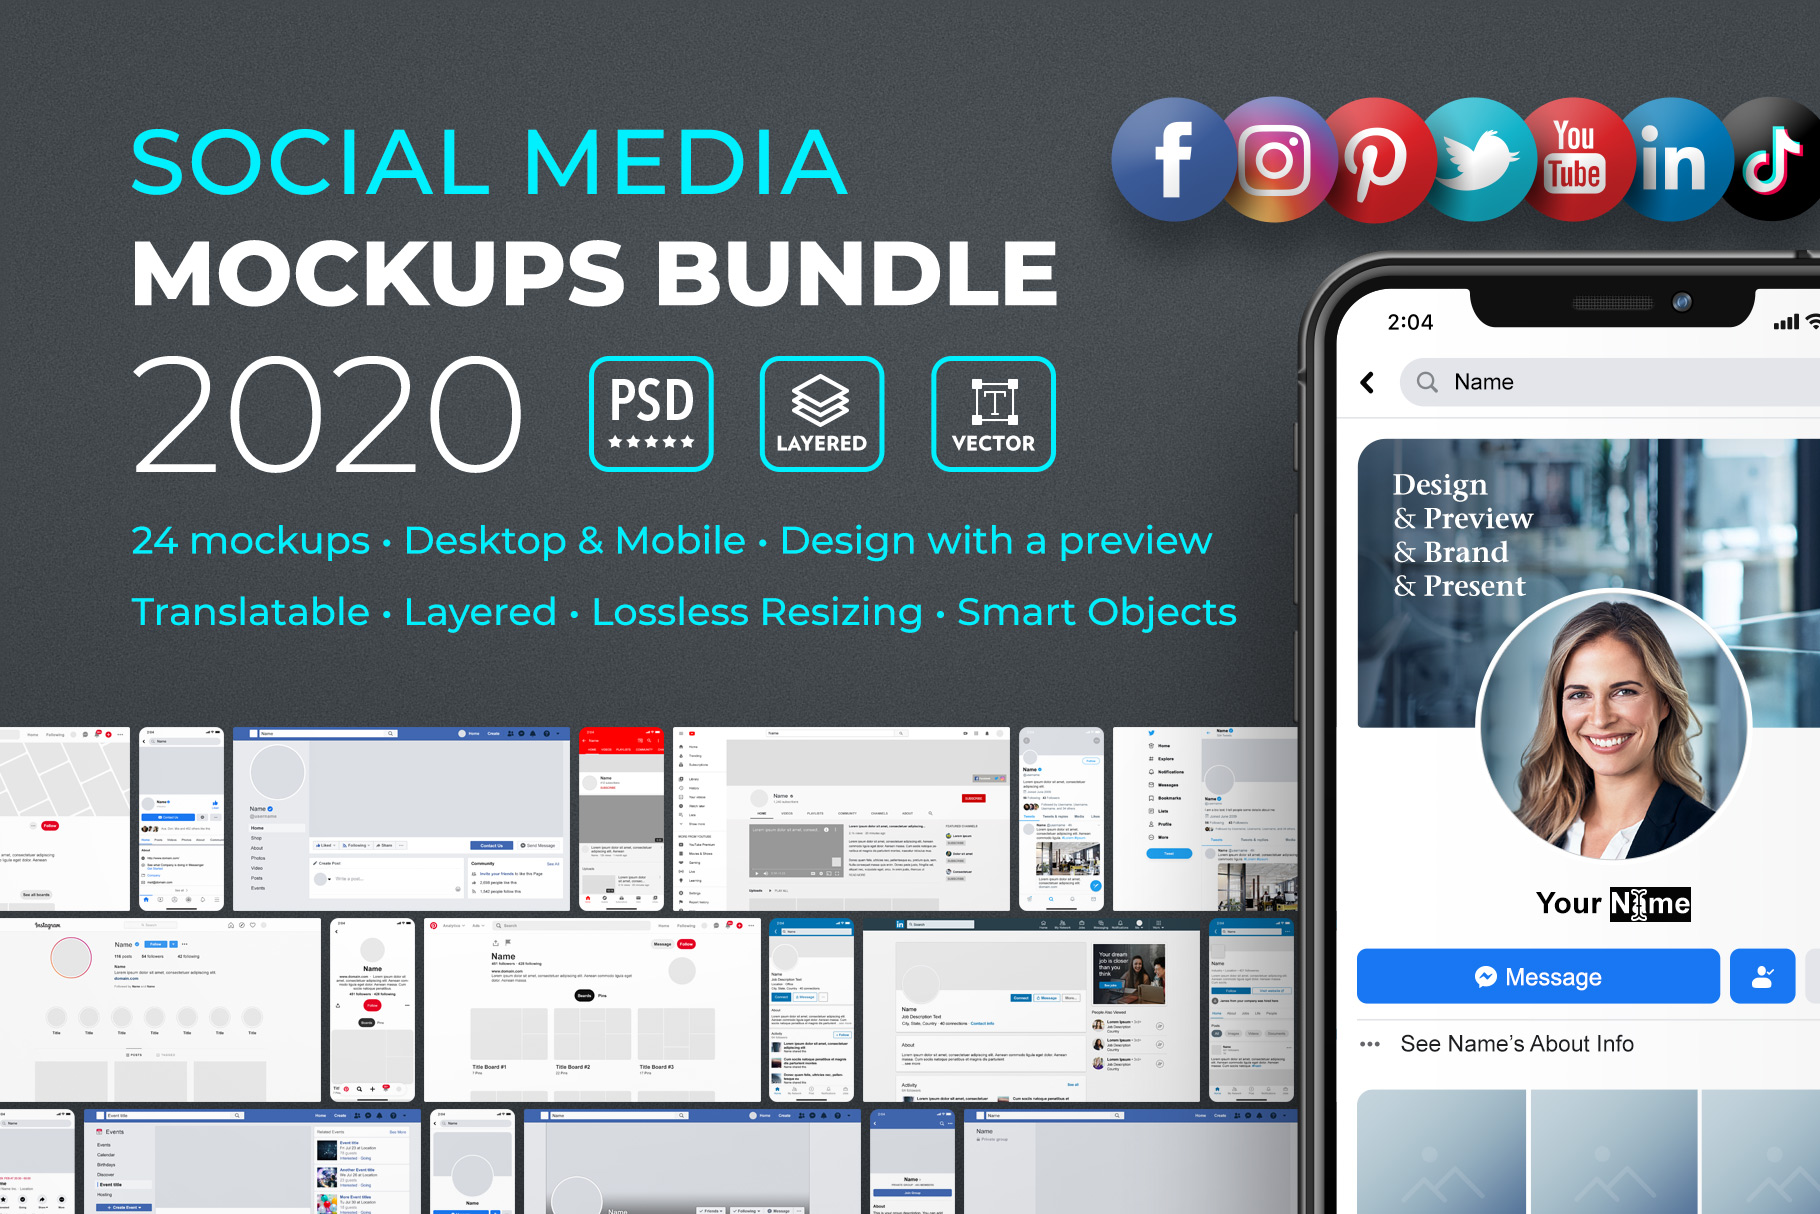 Social Media Mockups Collection 2020